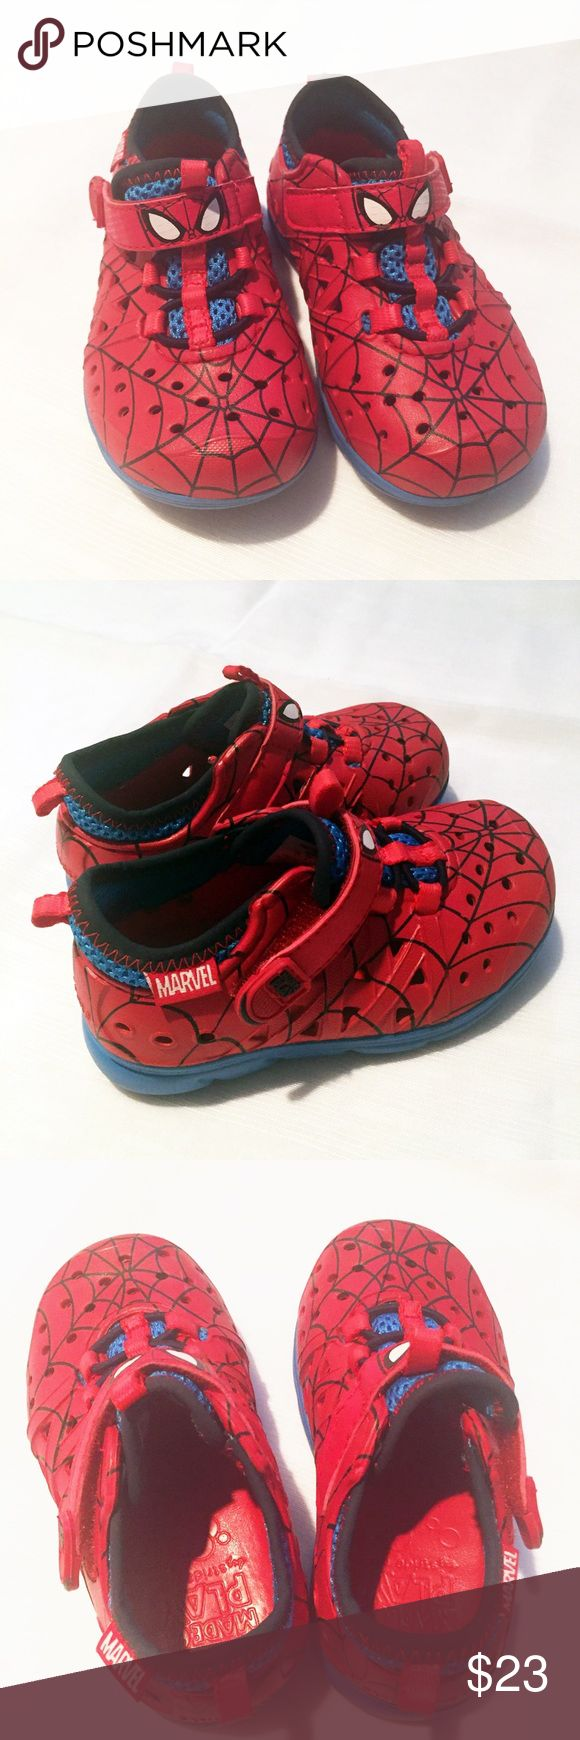 Stride Rite Spider-Man Phibian Sneakers Sz 7 Stride Rite Spider-Man phibian sneakers. Perfect for water and dry play. Excellent condition. Size toddler 7. Velcro closure. Stride Rite Shoes